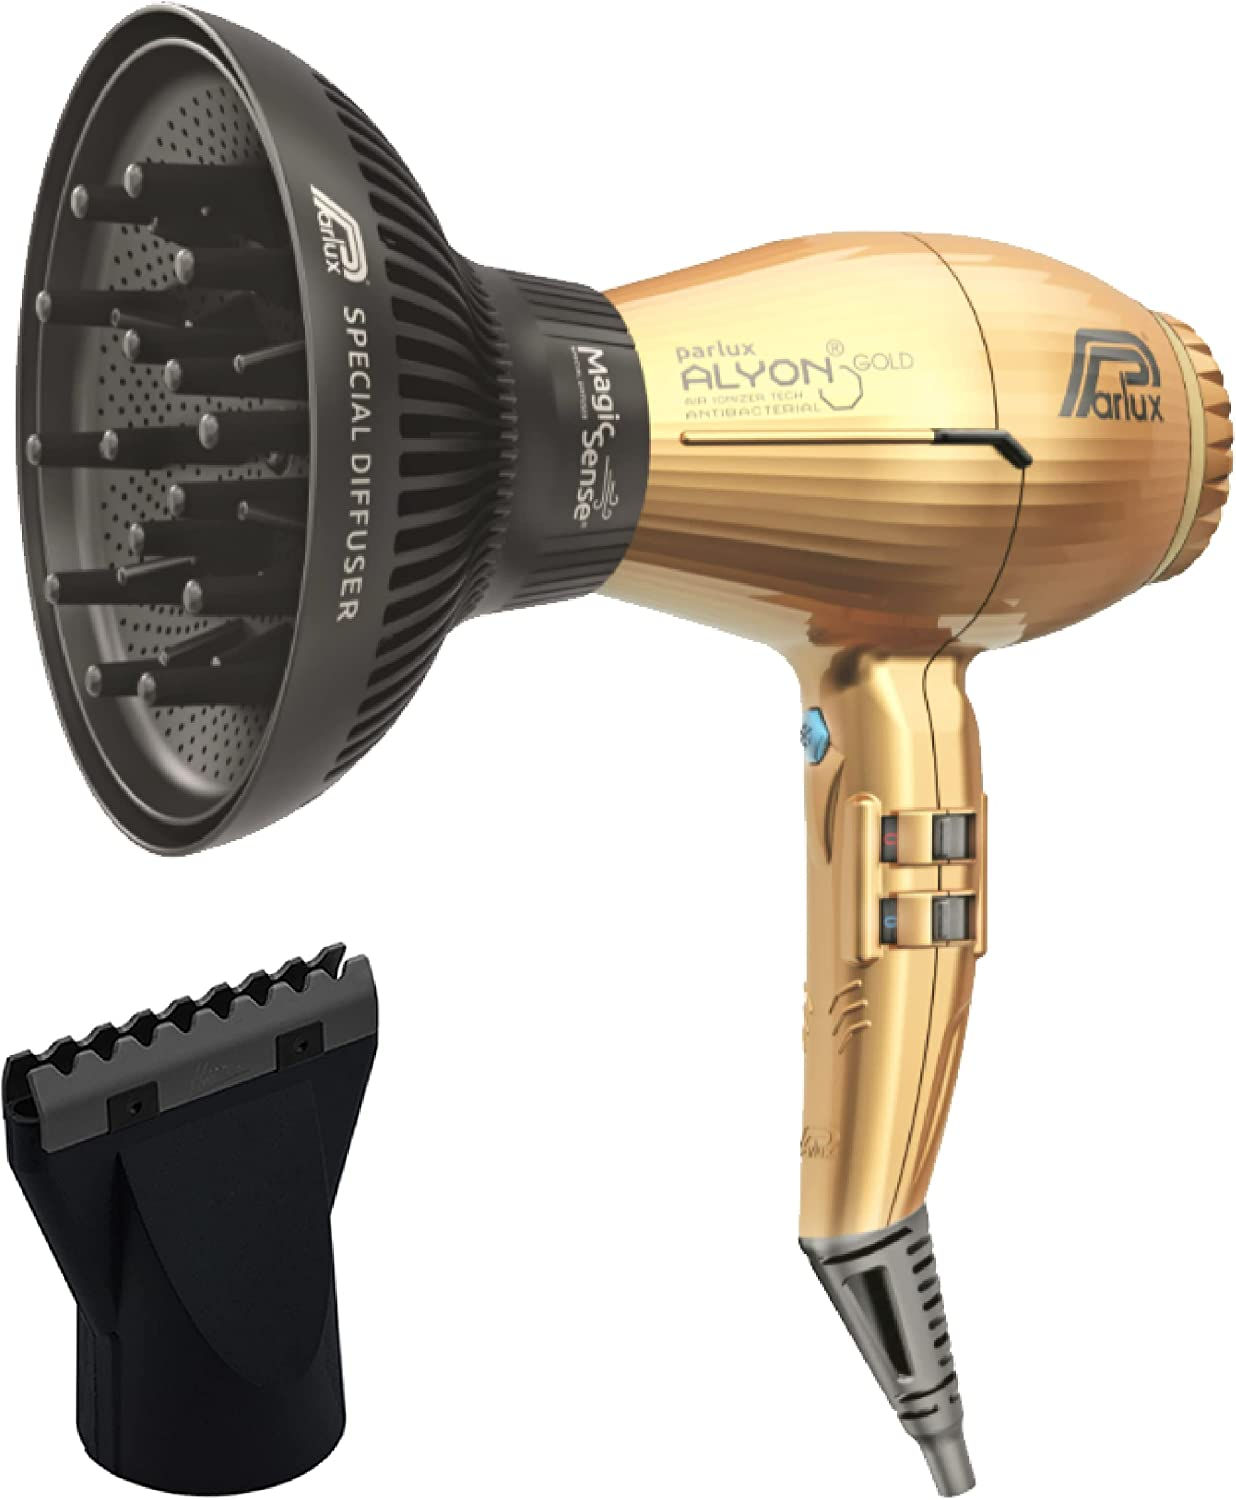 Parlux Alyon Gold Professional Hair Dryer with Magic Sense Special Diffuser and M Hair Designs Hot Blow Attachment